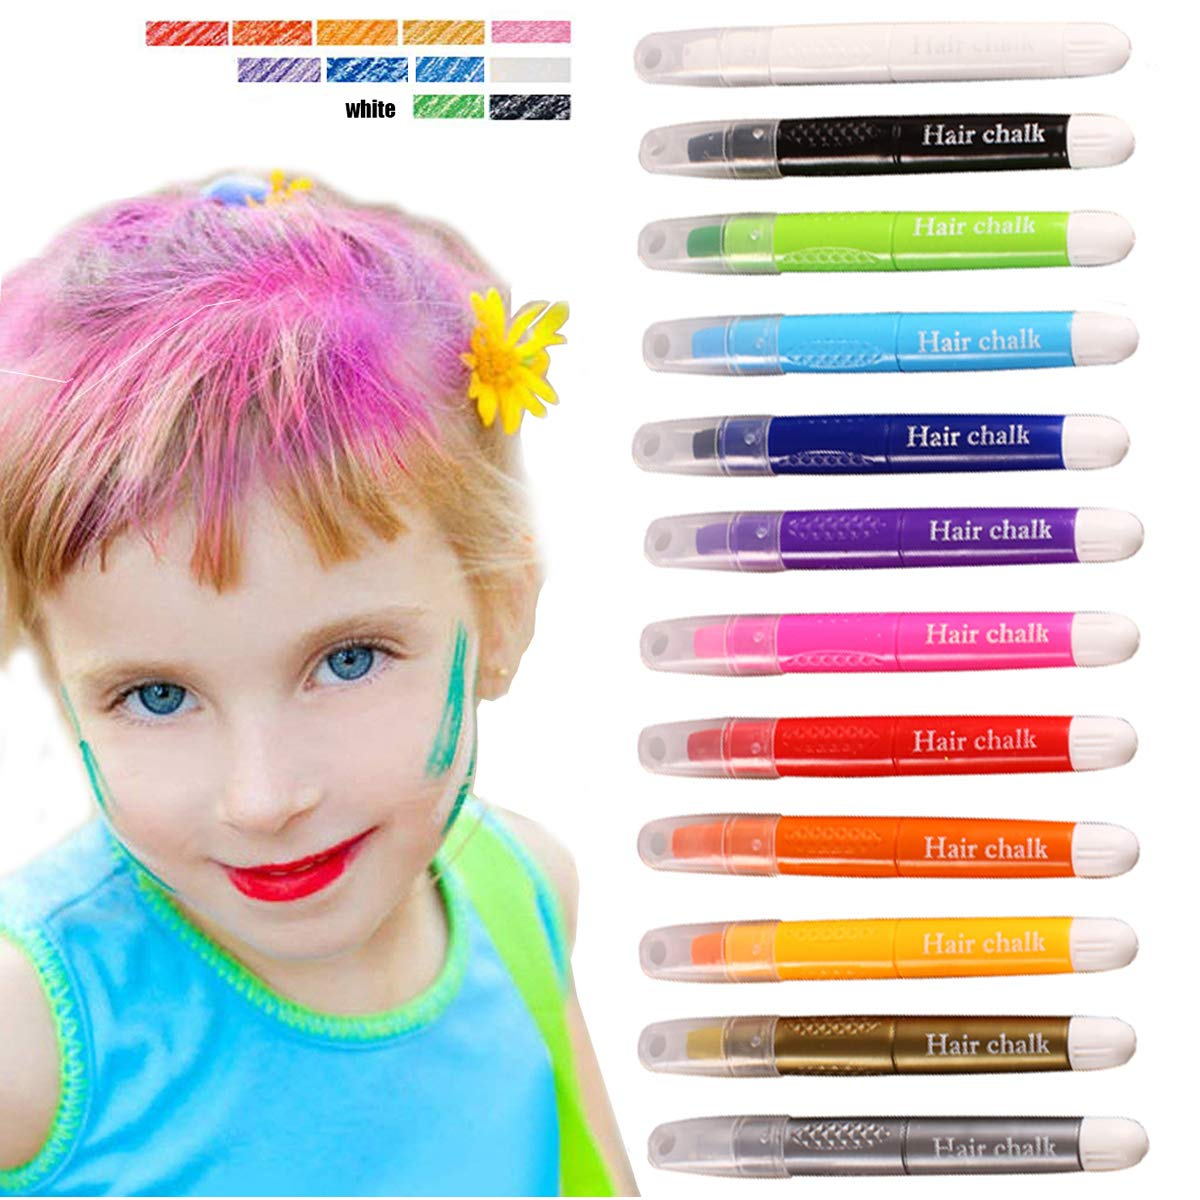 Kyerivs Hair Chalk Pens 12 Colors Temporary Hair Chalk, Easy To Use, Works On All color hair -Great Dress Up Performance Costumes Halloween Christmas Party Temporary Color For Kids Of All Ages